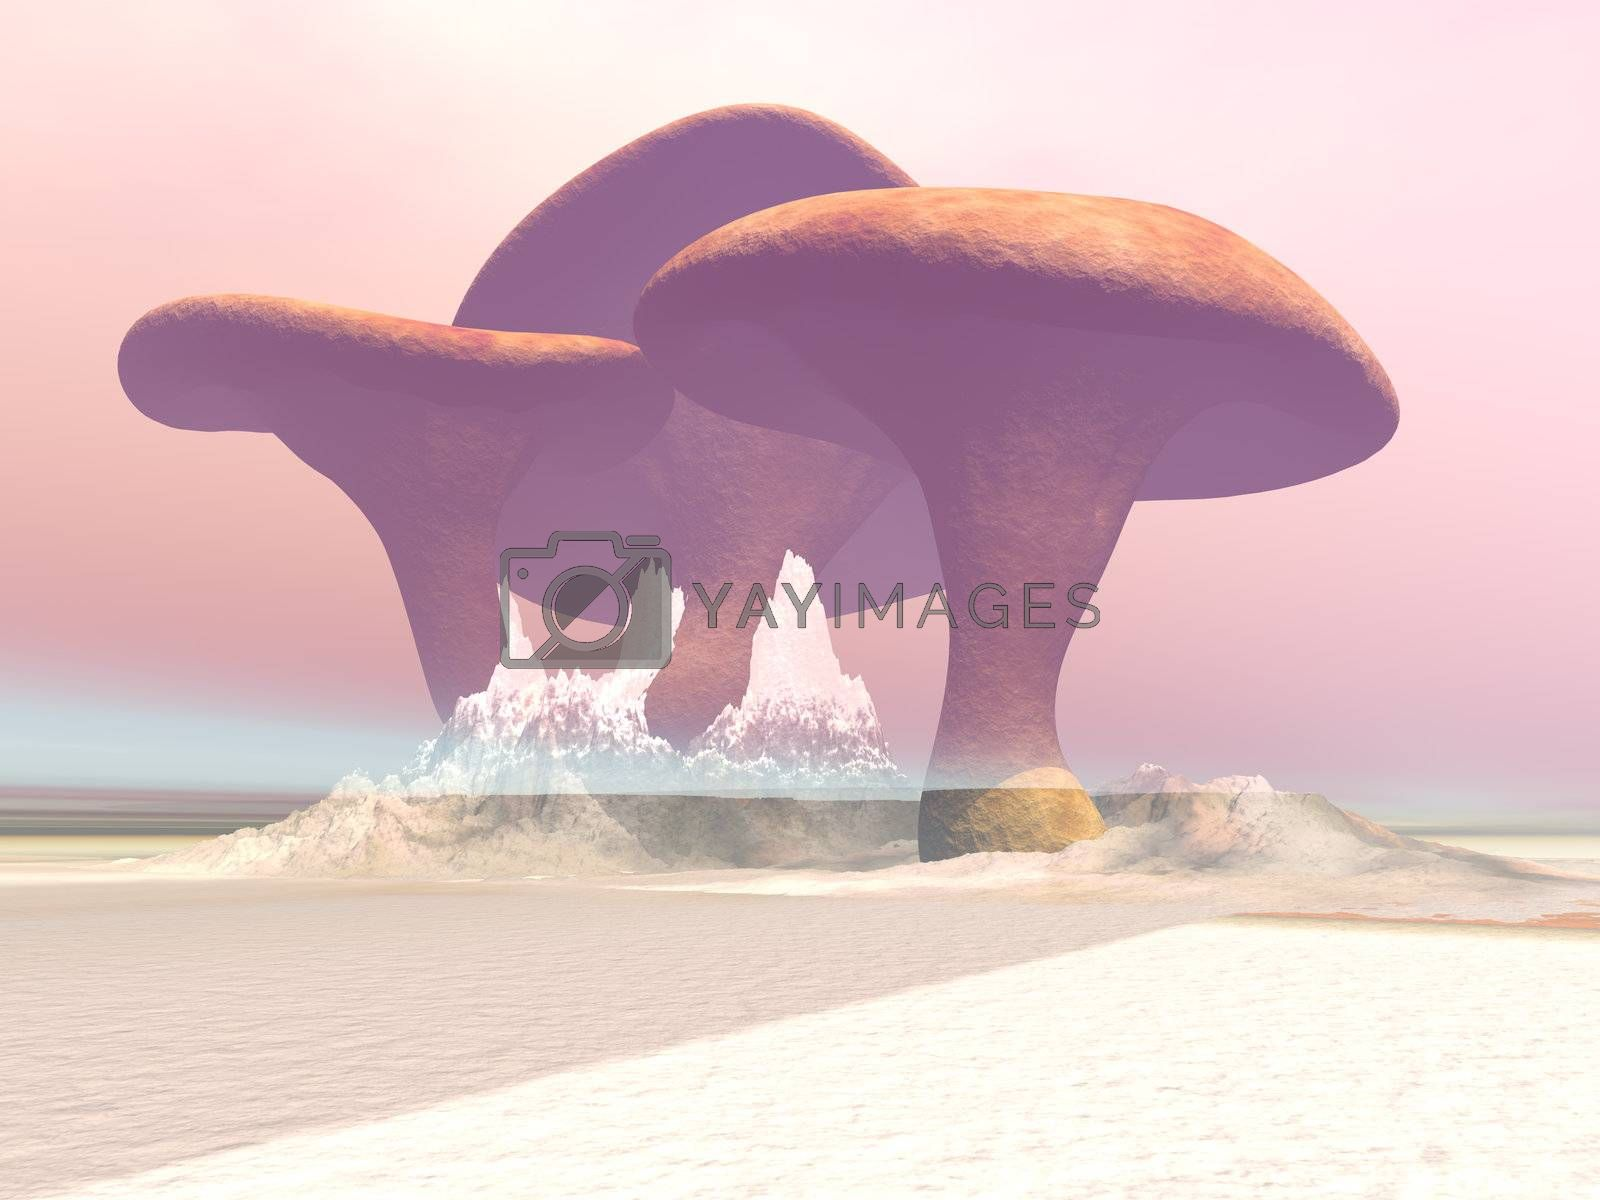 Royalty free image of GIANT MUSHROOMS by Catmando